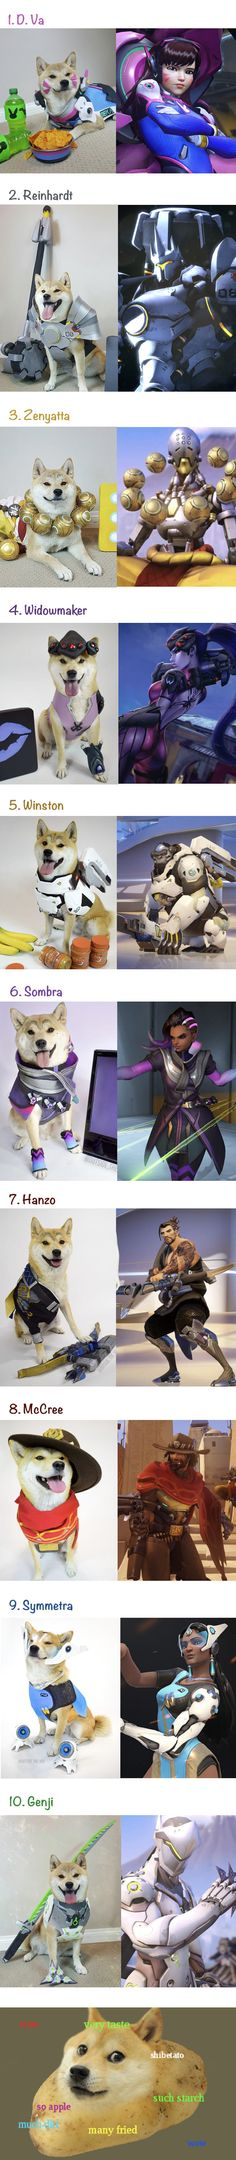 Overwatch doggo cosplay is the best cosplay.